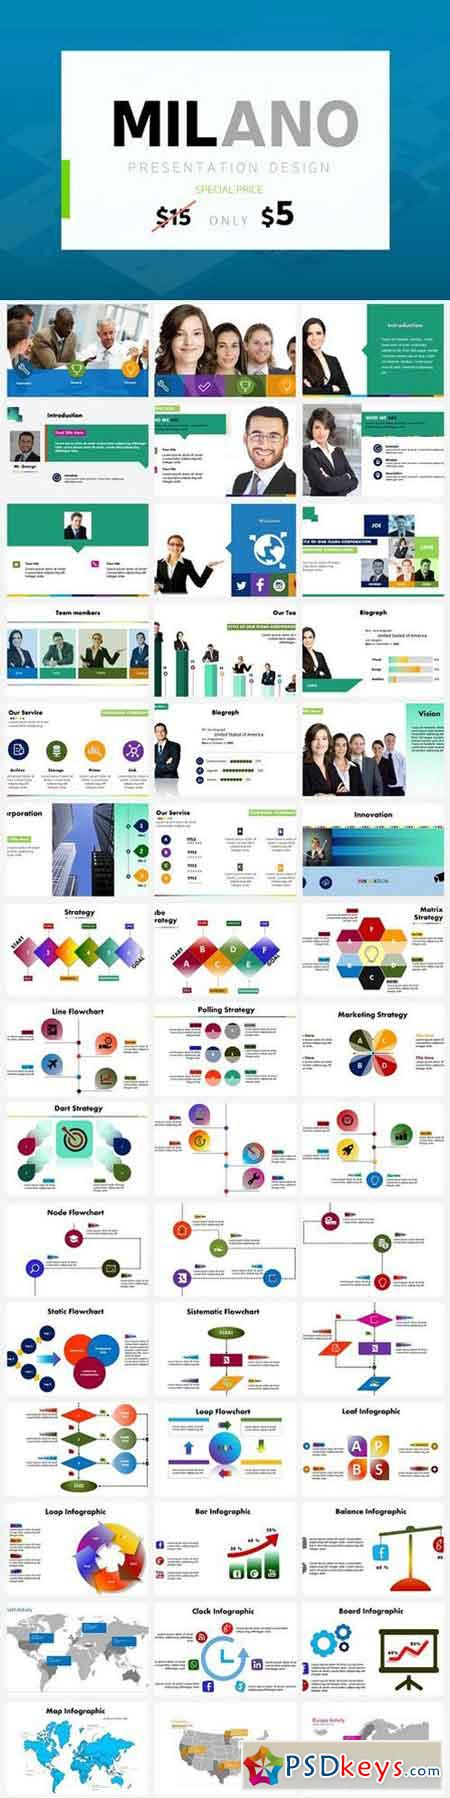 MILANO - Powerpoint Templates 1330236